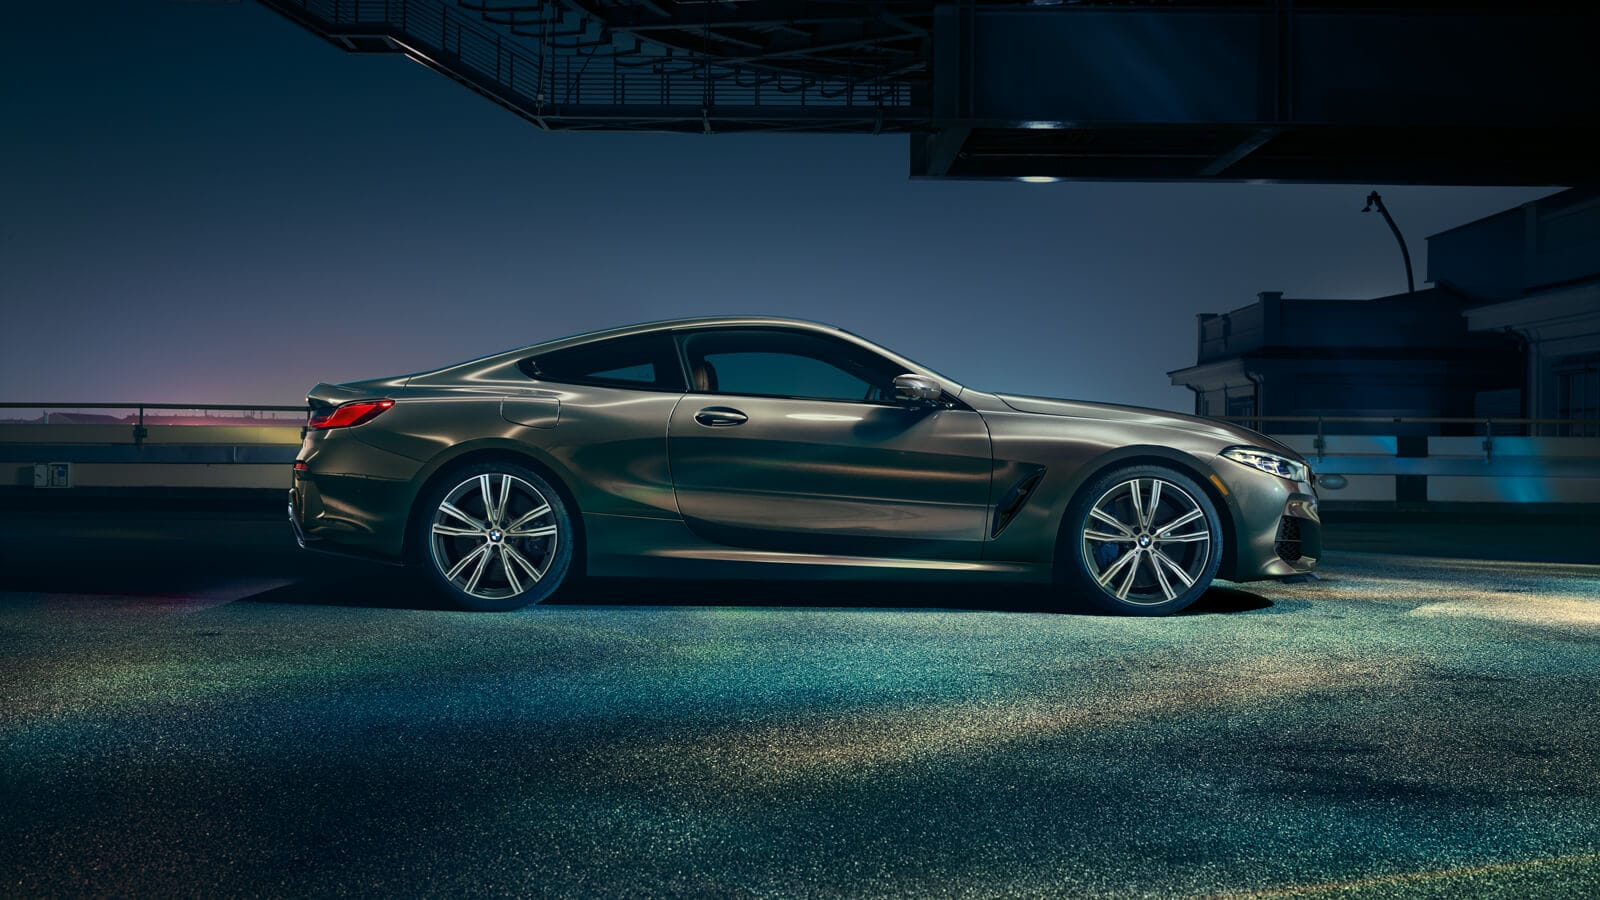 2019 BMW 8 Series for Sale near Gary, IN